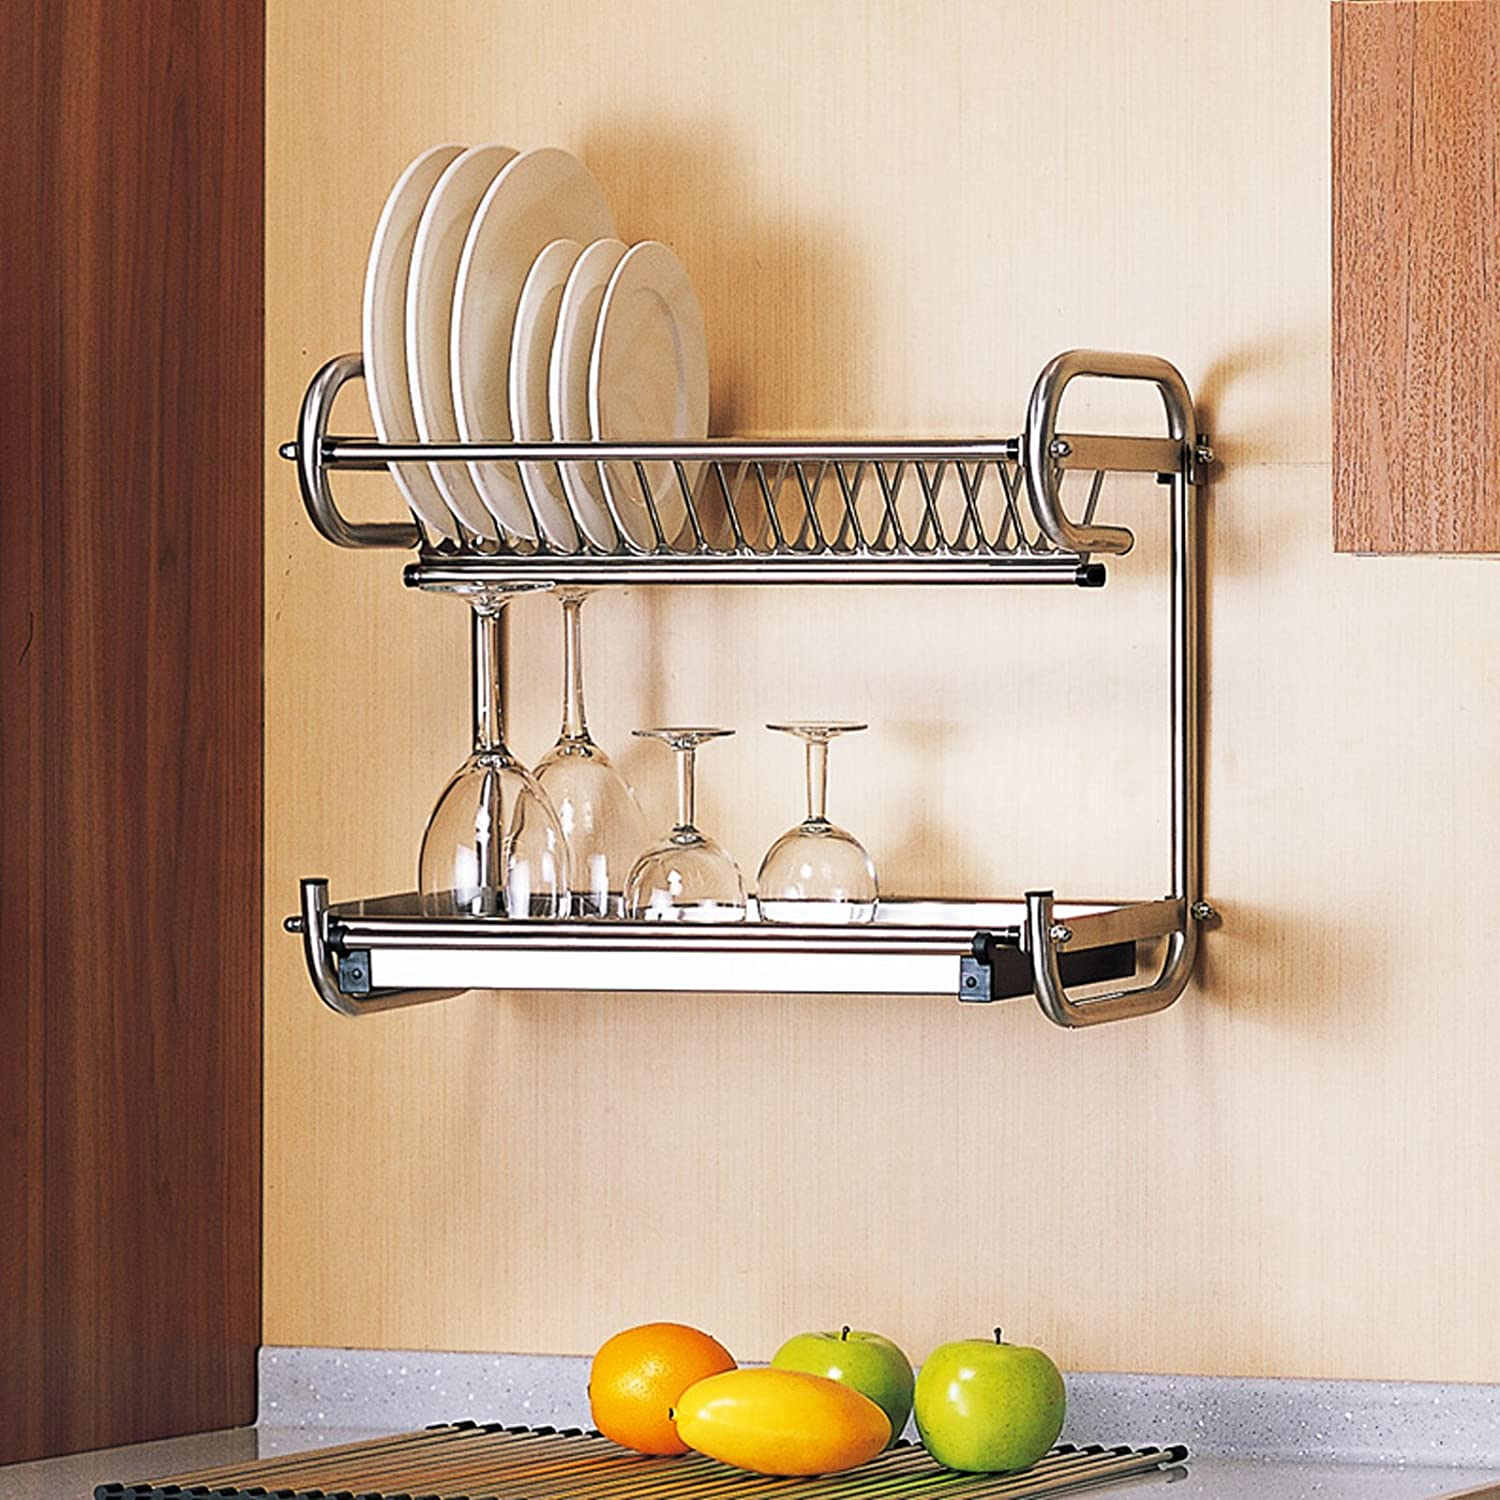 Amazon.com Probrico Wall Mounted Dish Drainer Rack Stainless Steel 23.6 inch Dish Drying Rack Plates Bowls Storage Organizer Holder Kitchen u0026 Dining & Amazon.com: Probrico Wall Mounted Dish Drainer Rack Stainless Steel ...